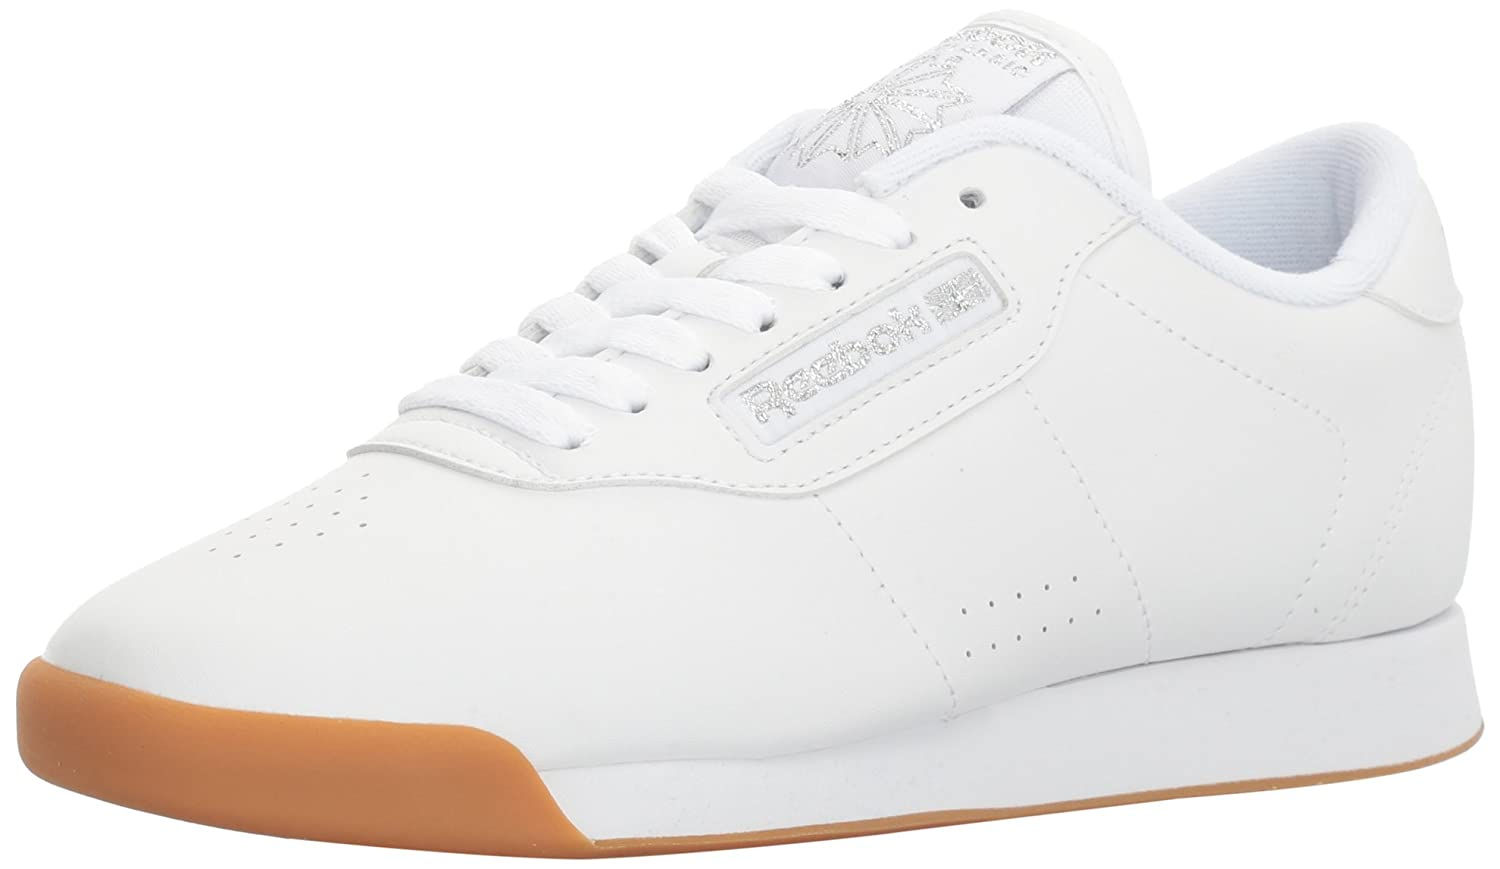 ba819357cb7a Reebok Womens Princess Sneaker  Amazon.ca  Shoes   Handbags